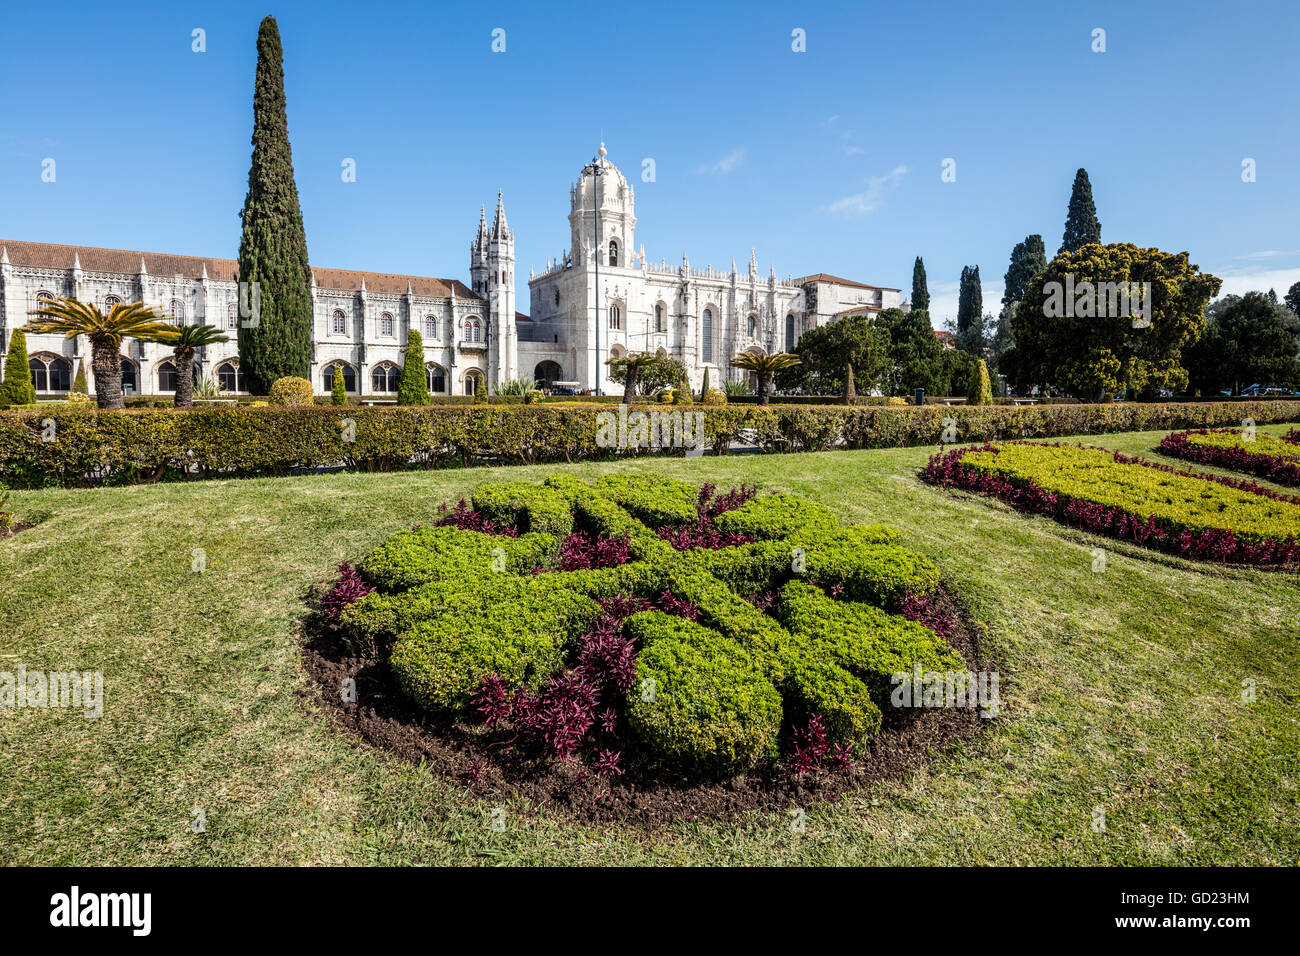 Jeronimos Monastery with late Gothic architecture, UNESCO, surrounded by gardens, Santa Maria de Belem, Lisbon, - Stock Image